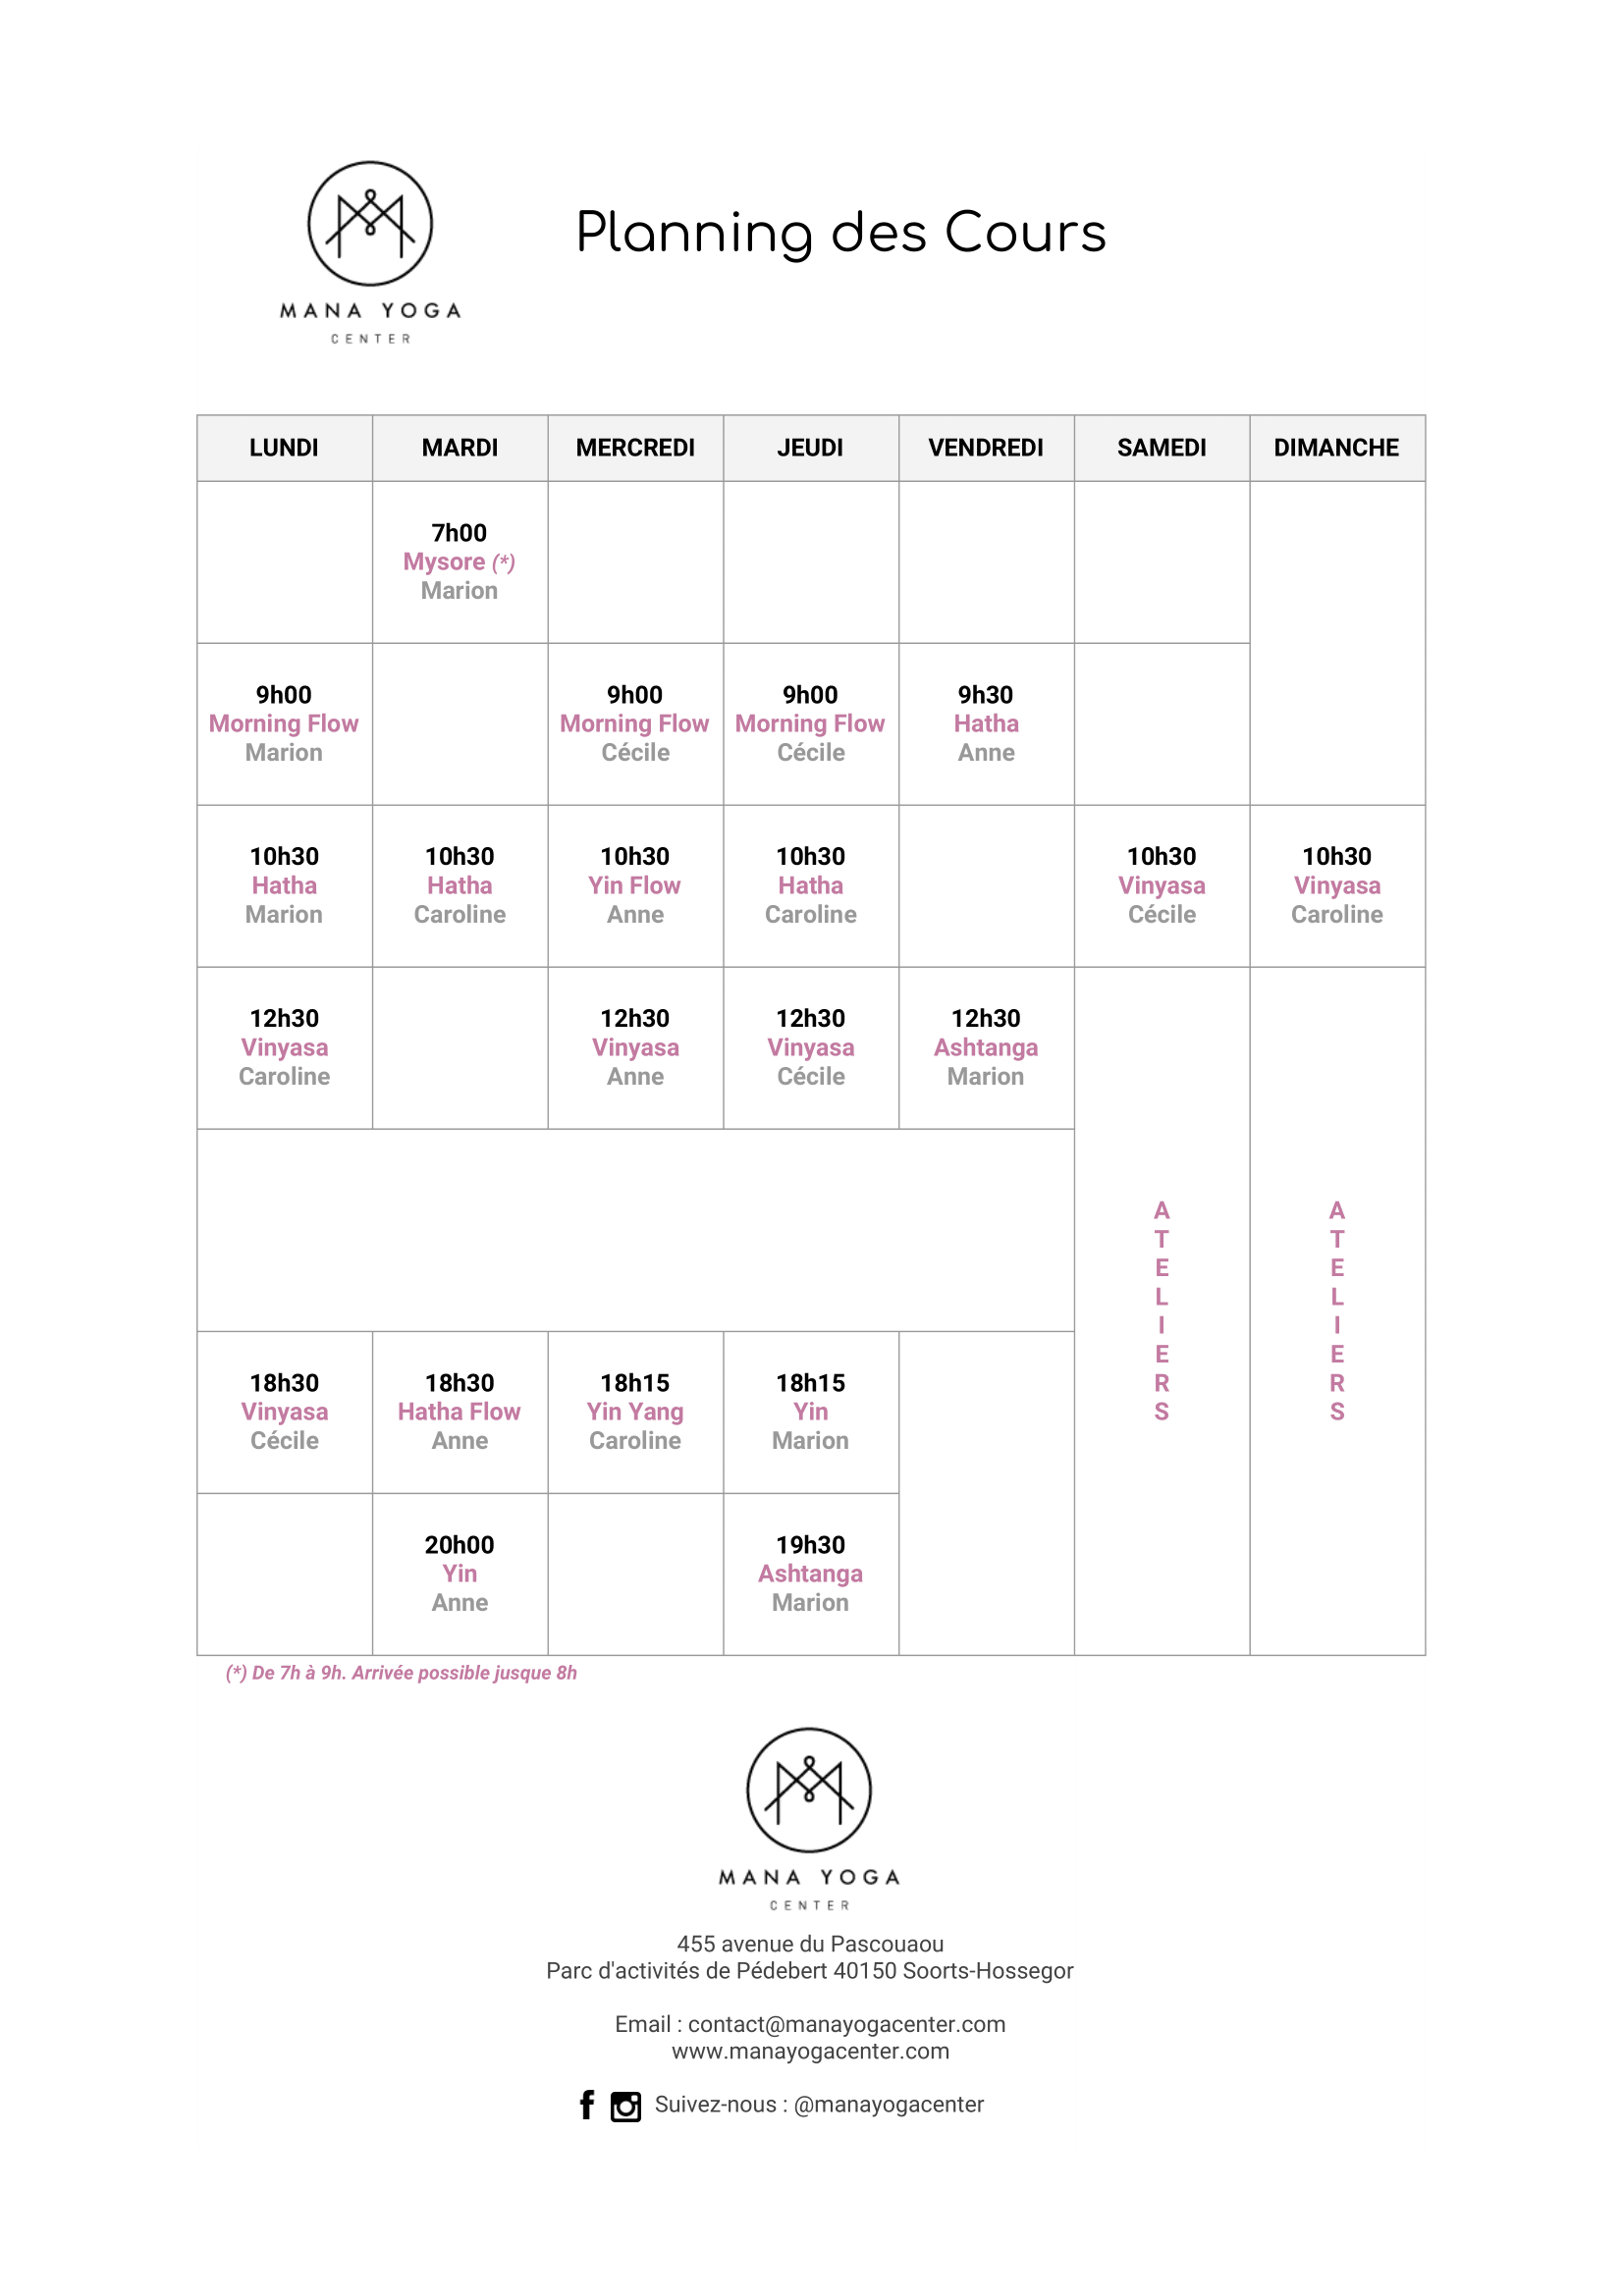 Planning Mana Yoga  Center - Hossegor